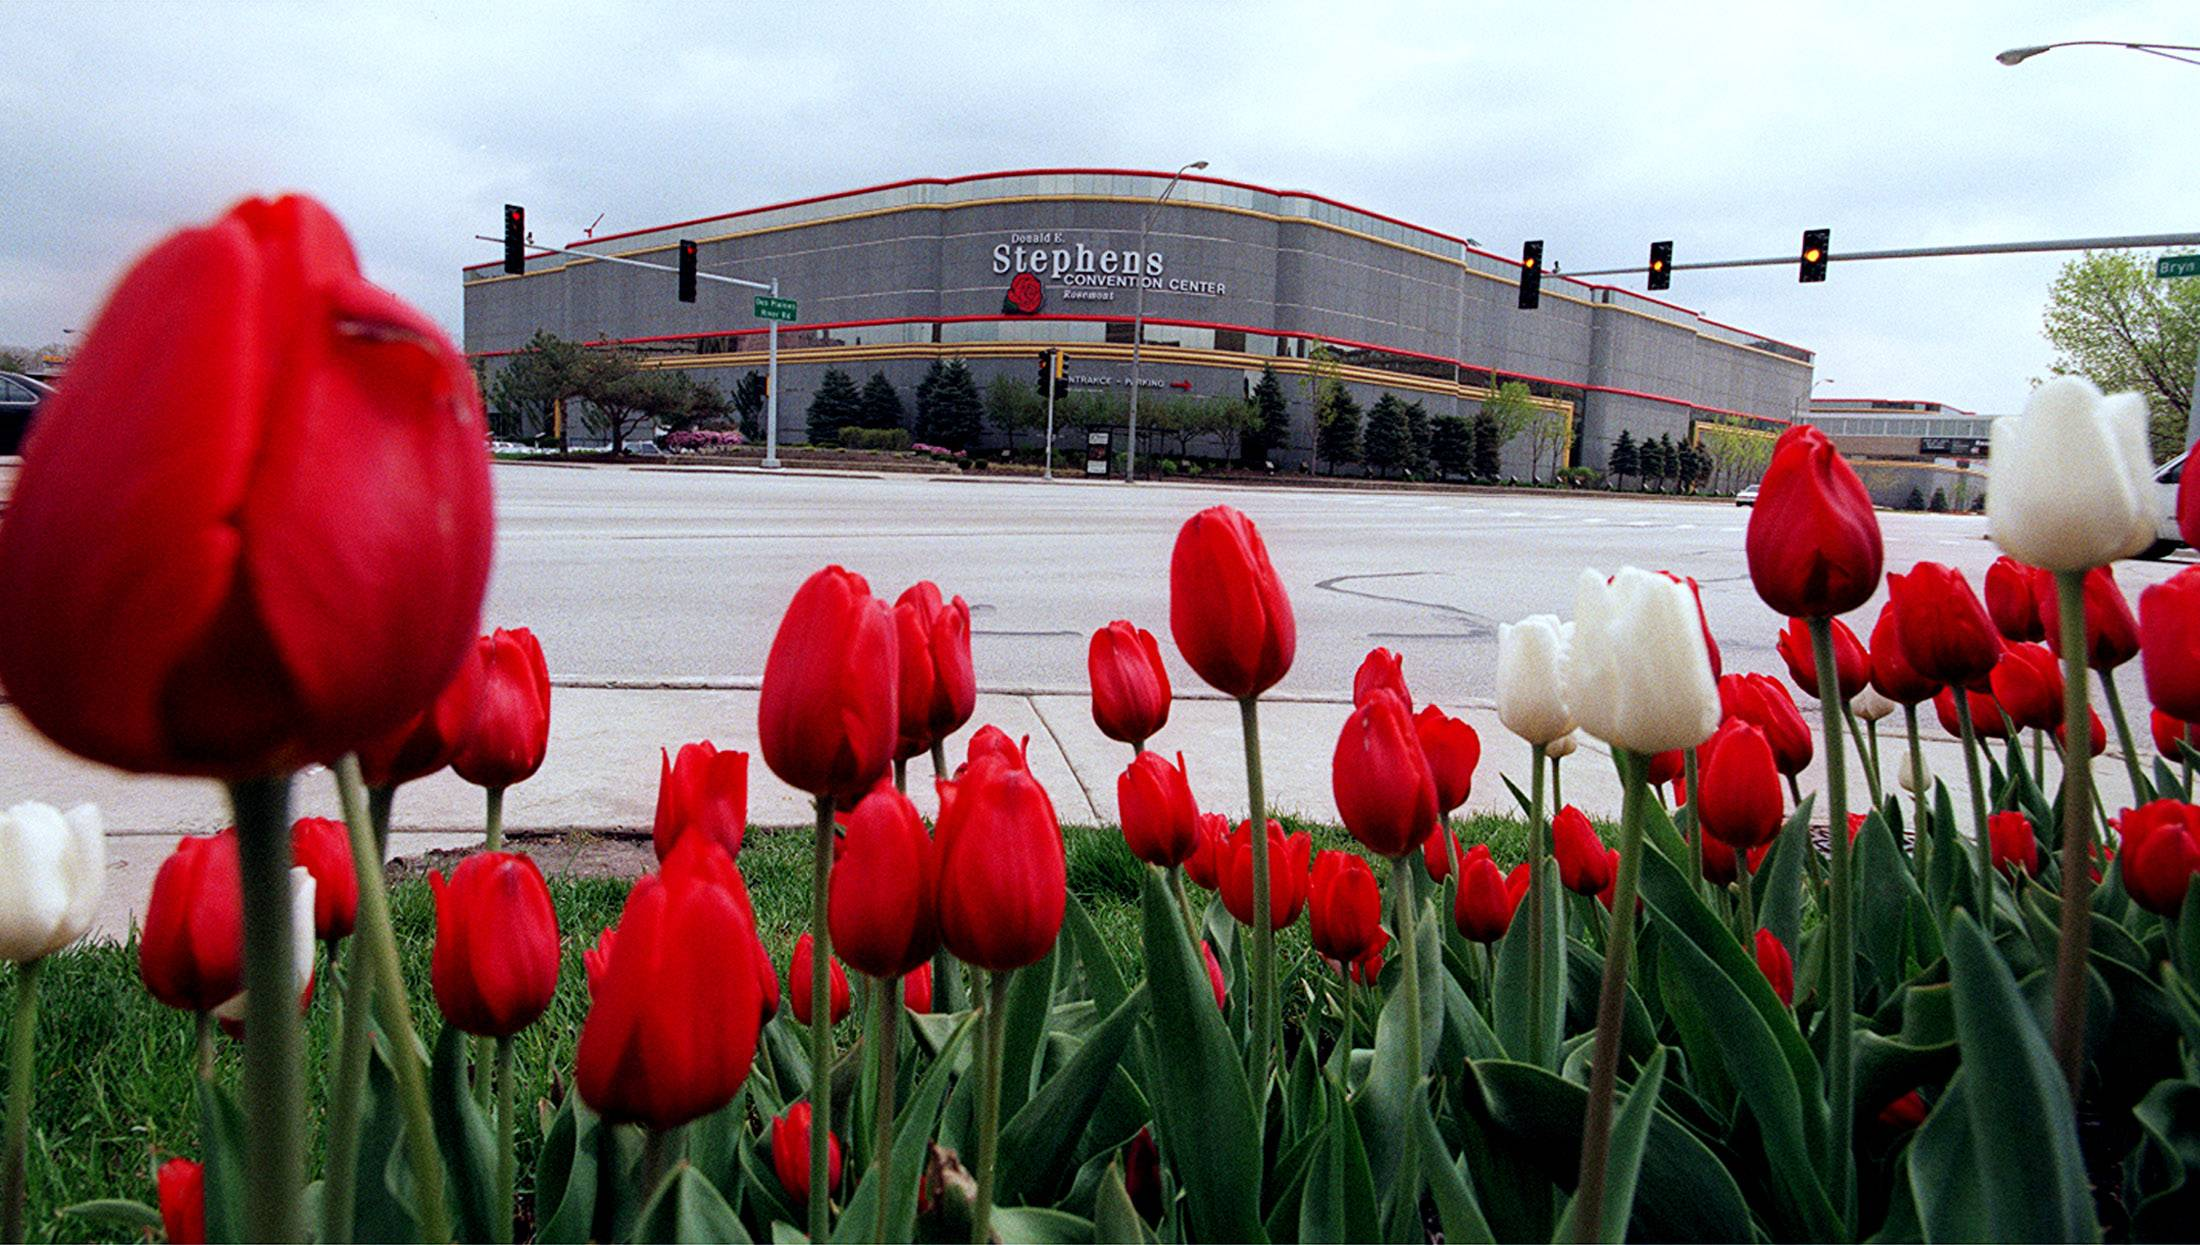 The Donald E. Stephens Convention Center in Rosemont could be in line to host a tobacco industry trade show, under legislation being considered by Gov. Pat Quinn.